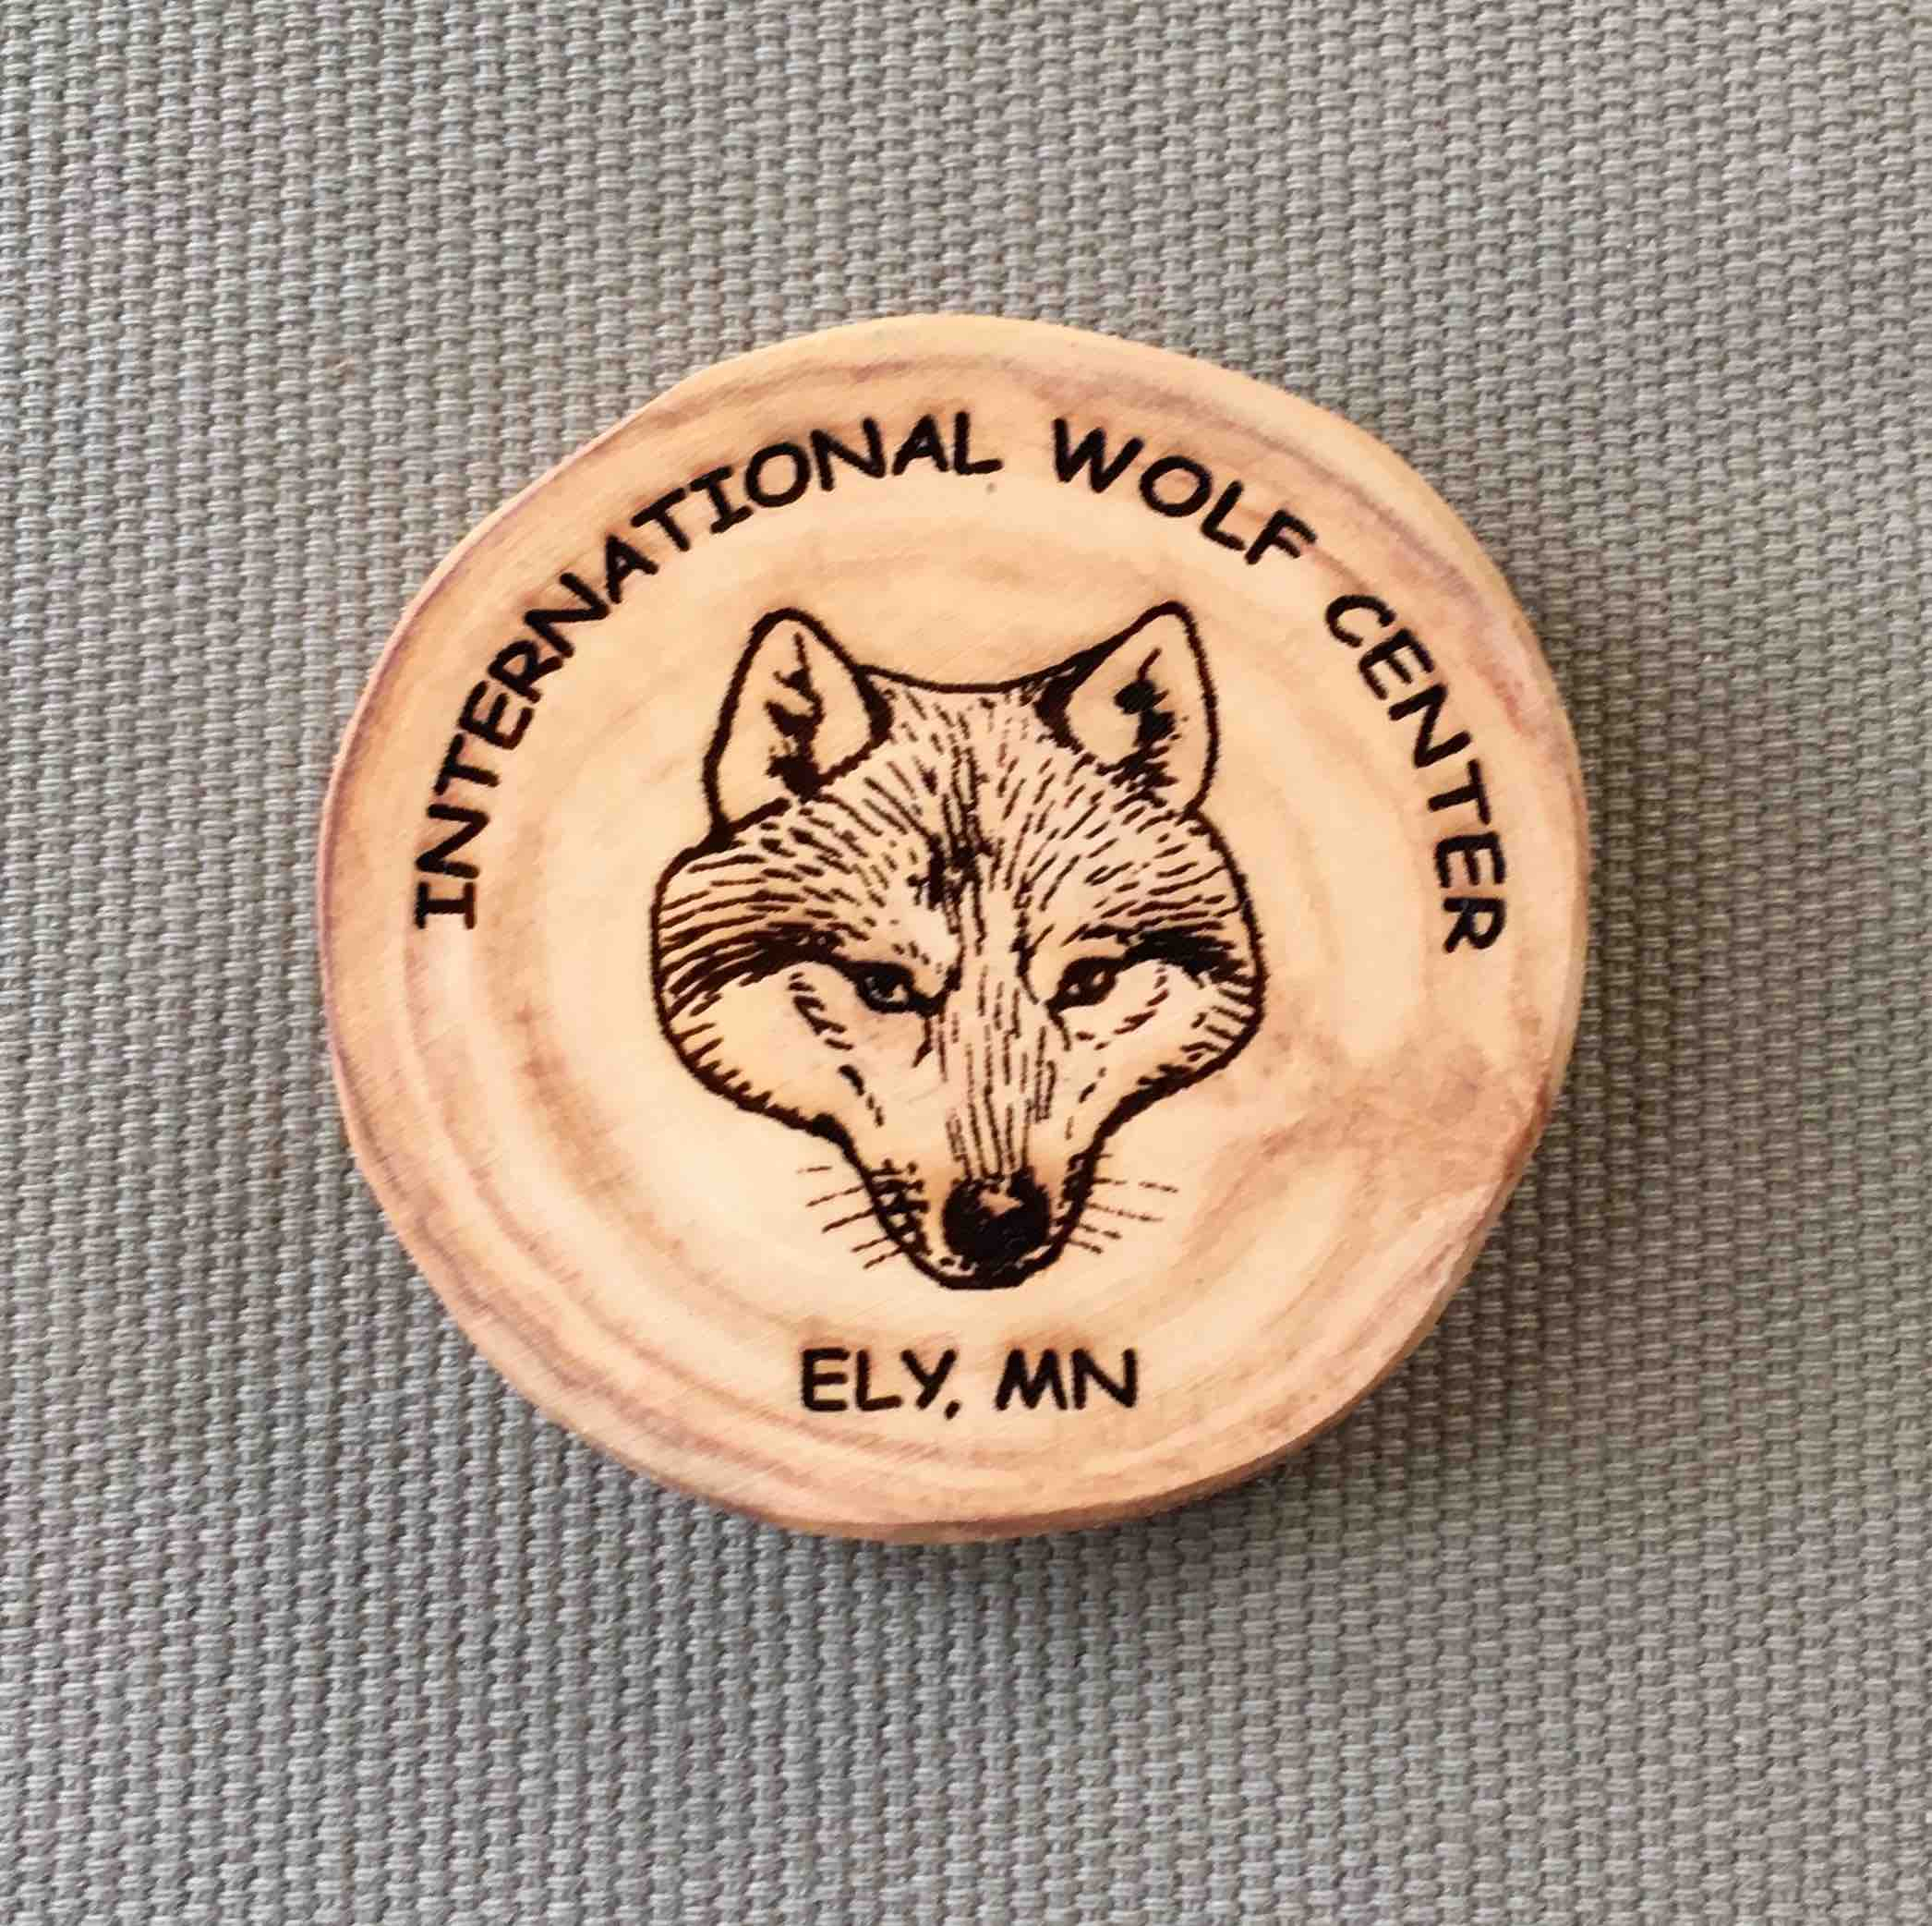 International Wolf Center (Ely, Minnesota)